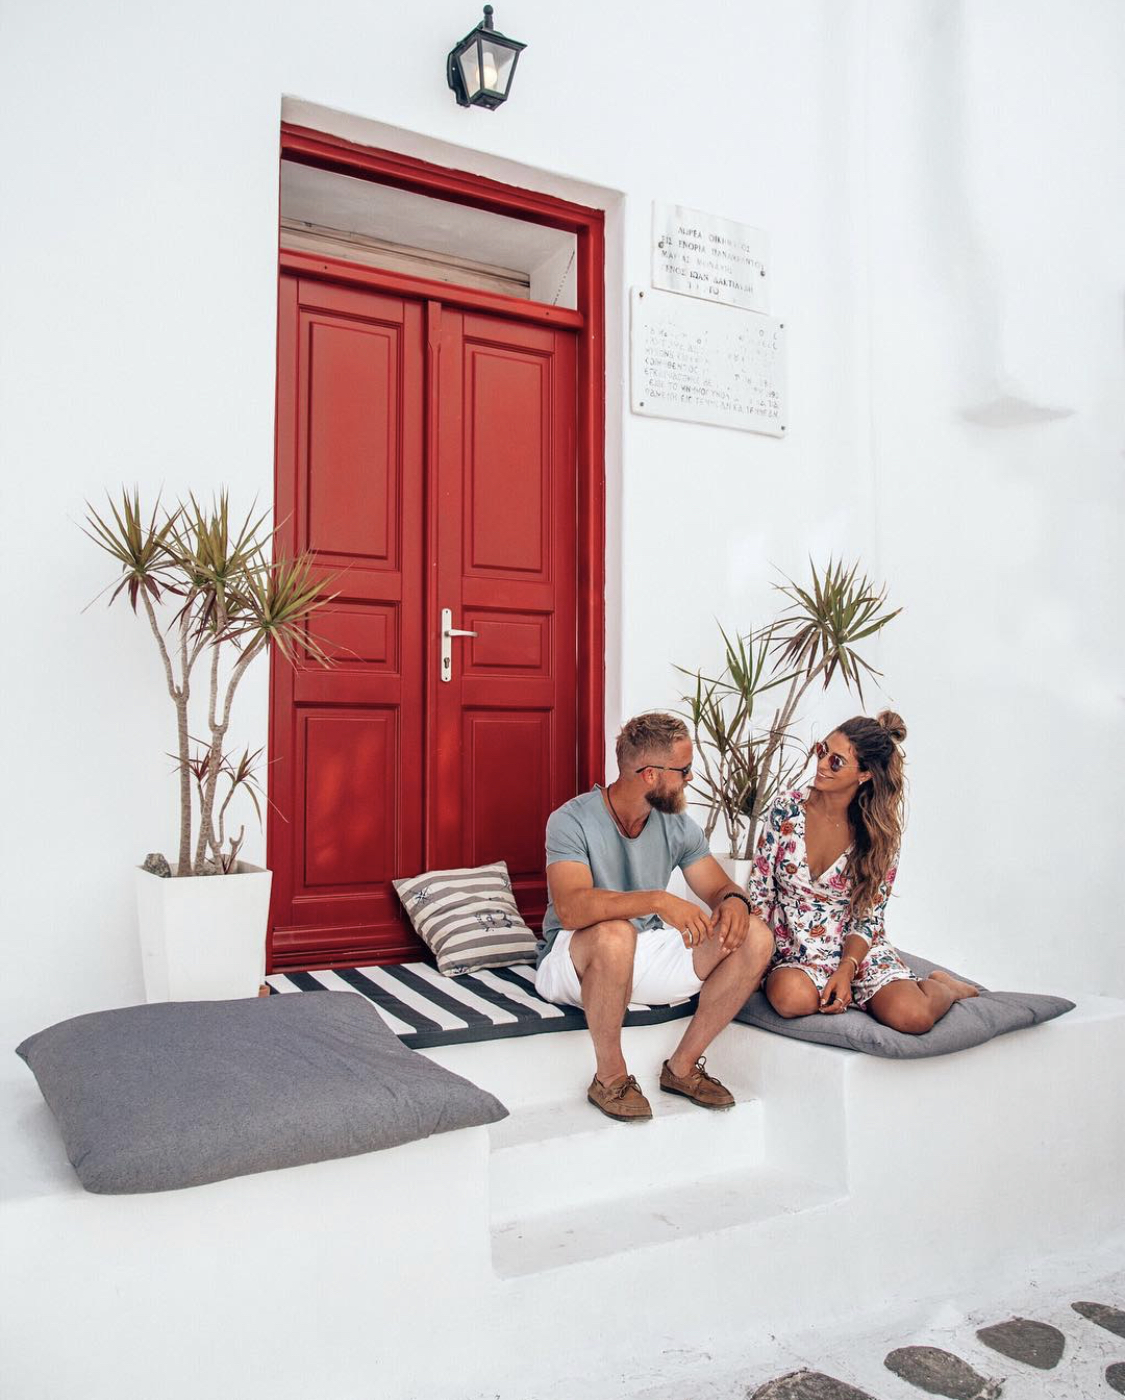 Couple on a couples getaway to Mykonos